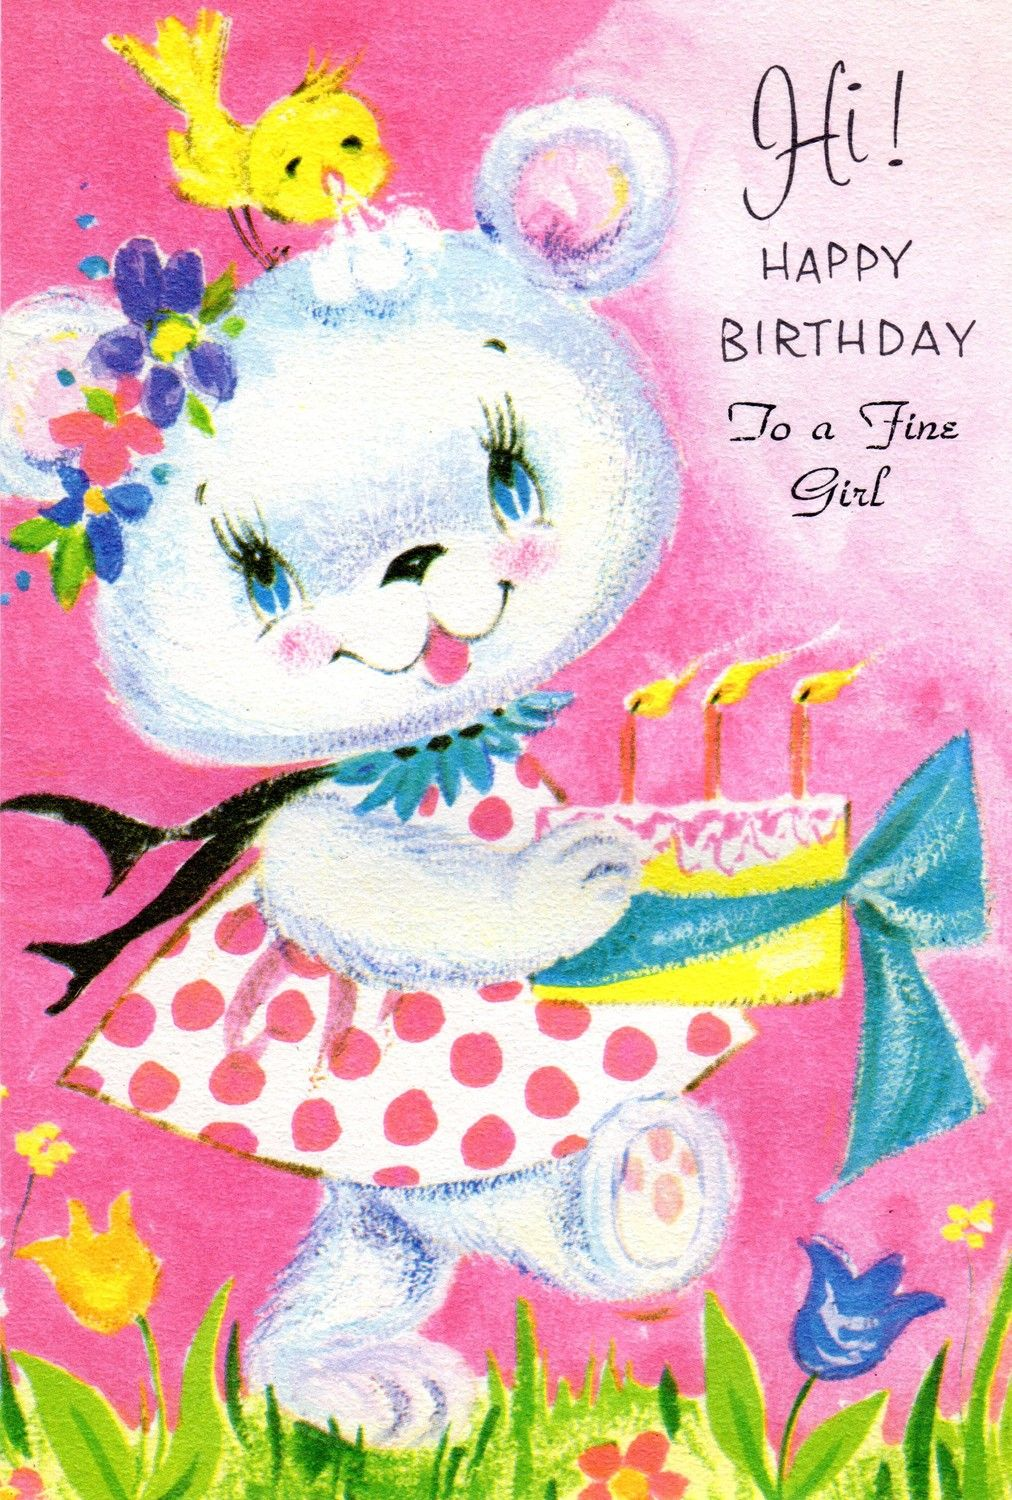 Pink birthday card girl child vintage 1960s to a fine girl bunny pink birthday card girl child vintage 1960s to a fine girl bunny rabbit bird nos unused bookmarktalkfo Choice Image